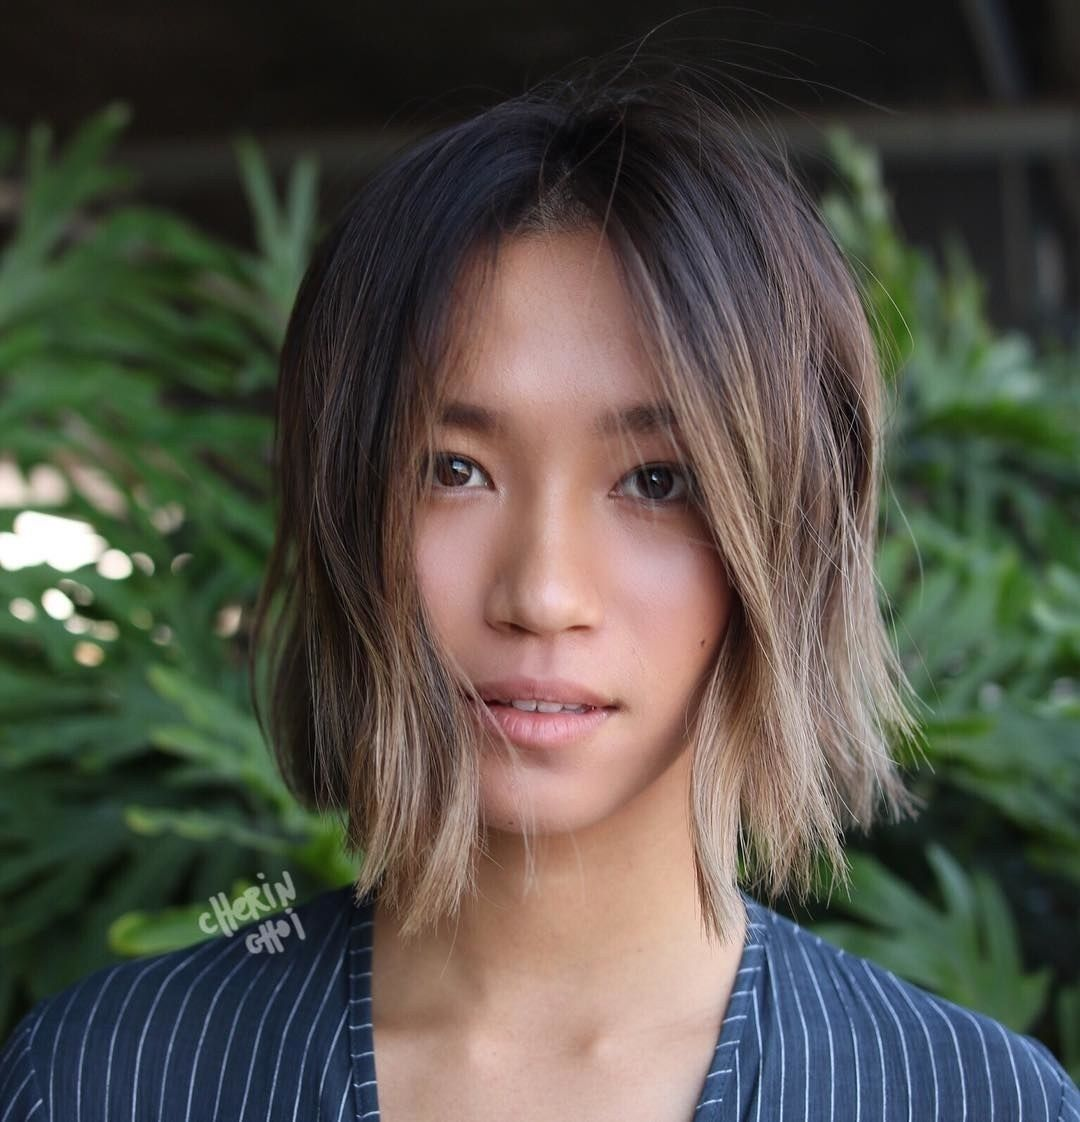 Best Straight Hair Cuts: The Most Popular Pinterest Haircuts for Straight Hair